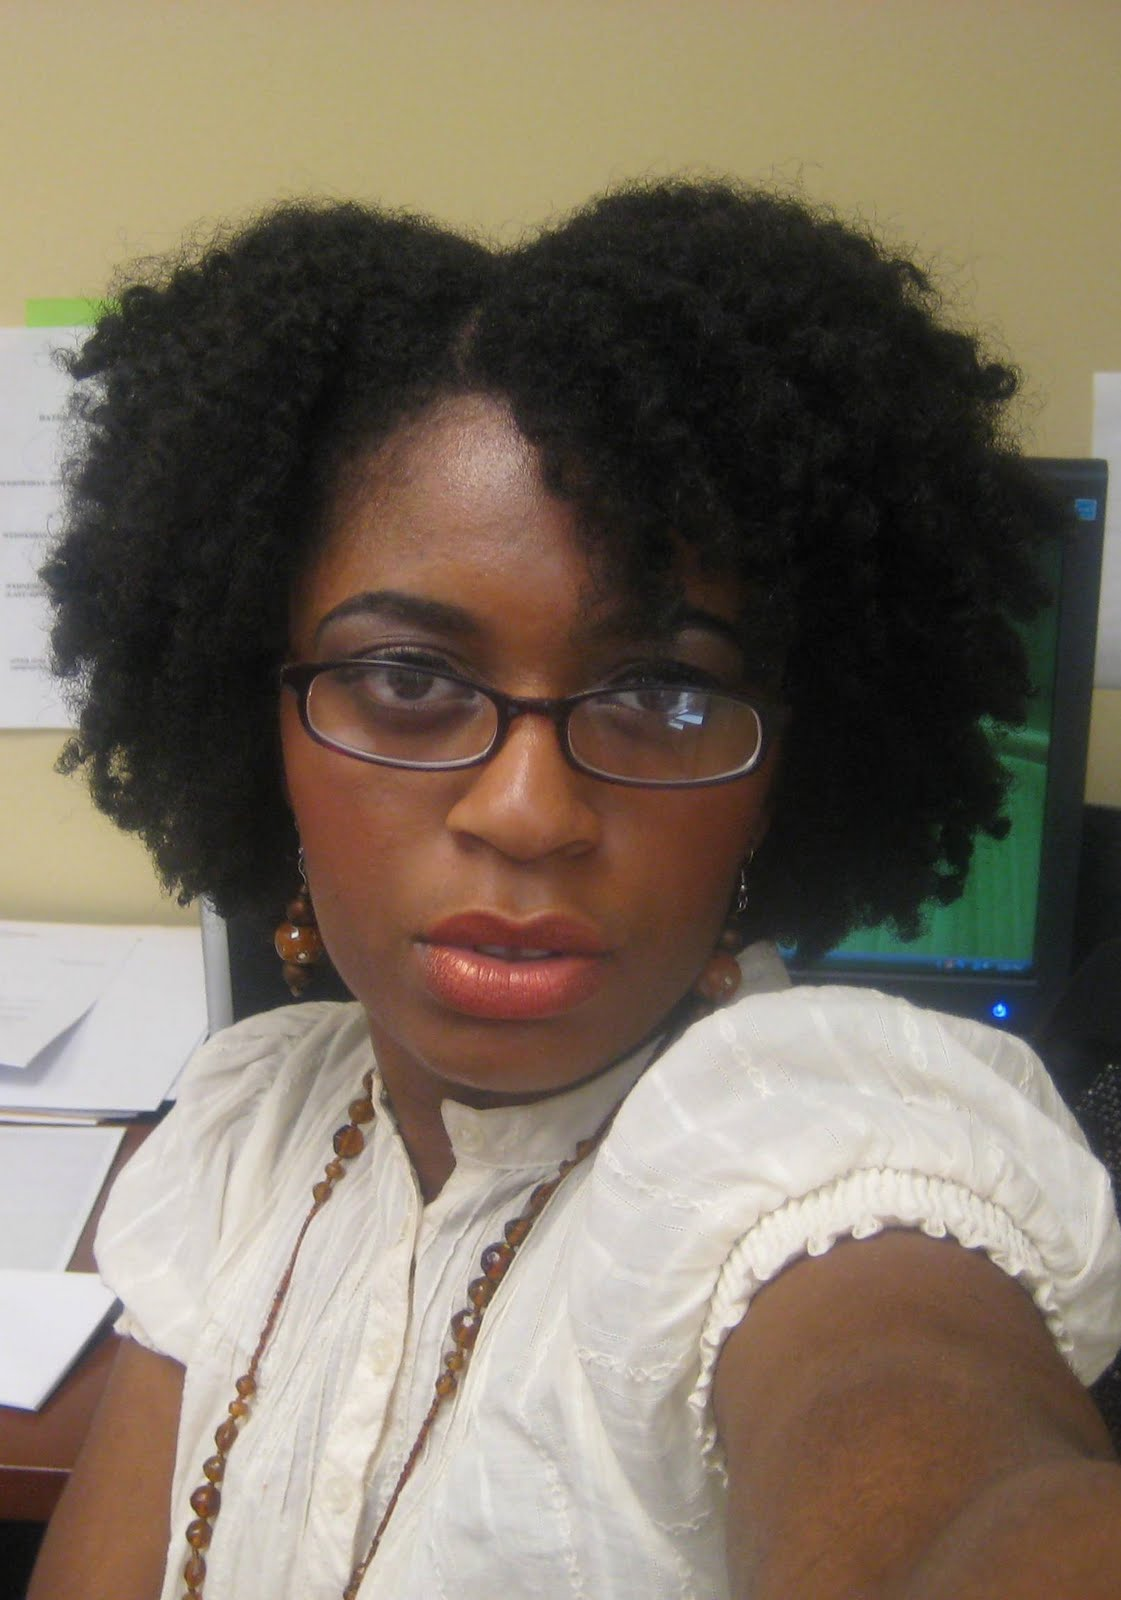 Prime Naturally Elegant Hairstyle Braid Out Or Textured Afro Short Hairstyles For Black Women Fulllsitofus